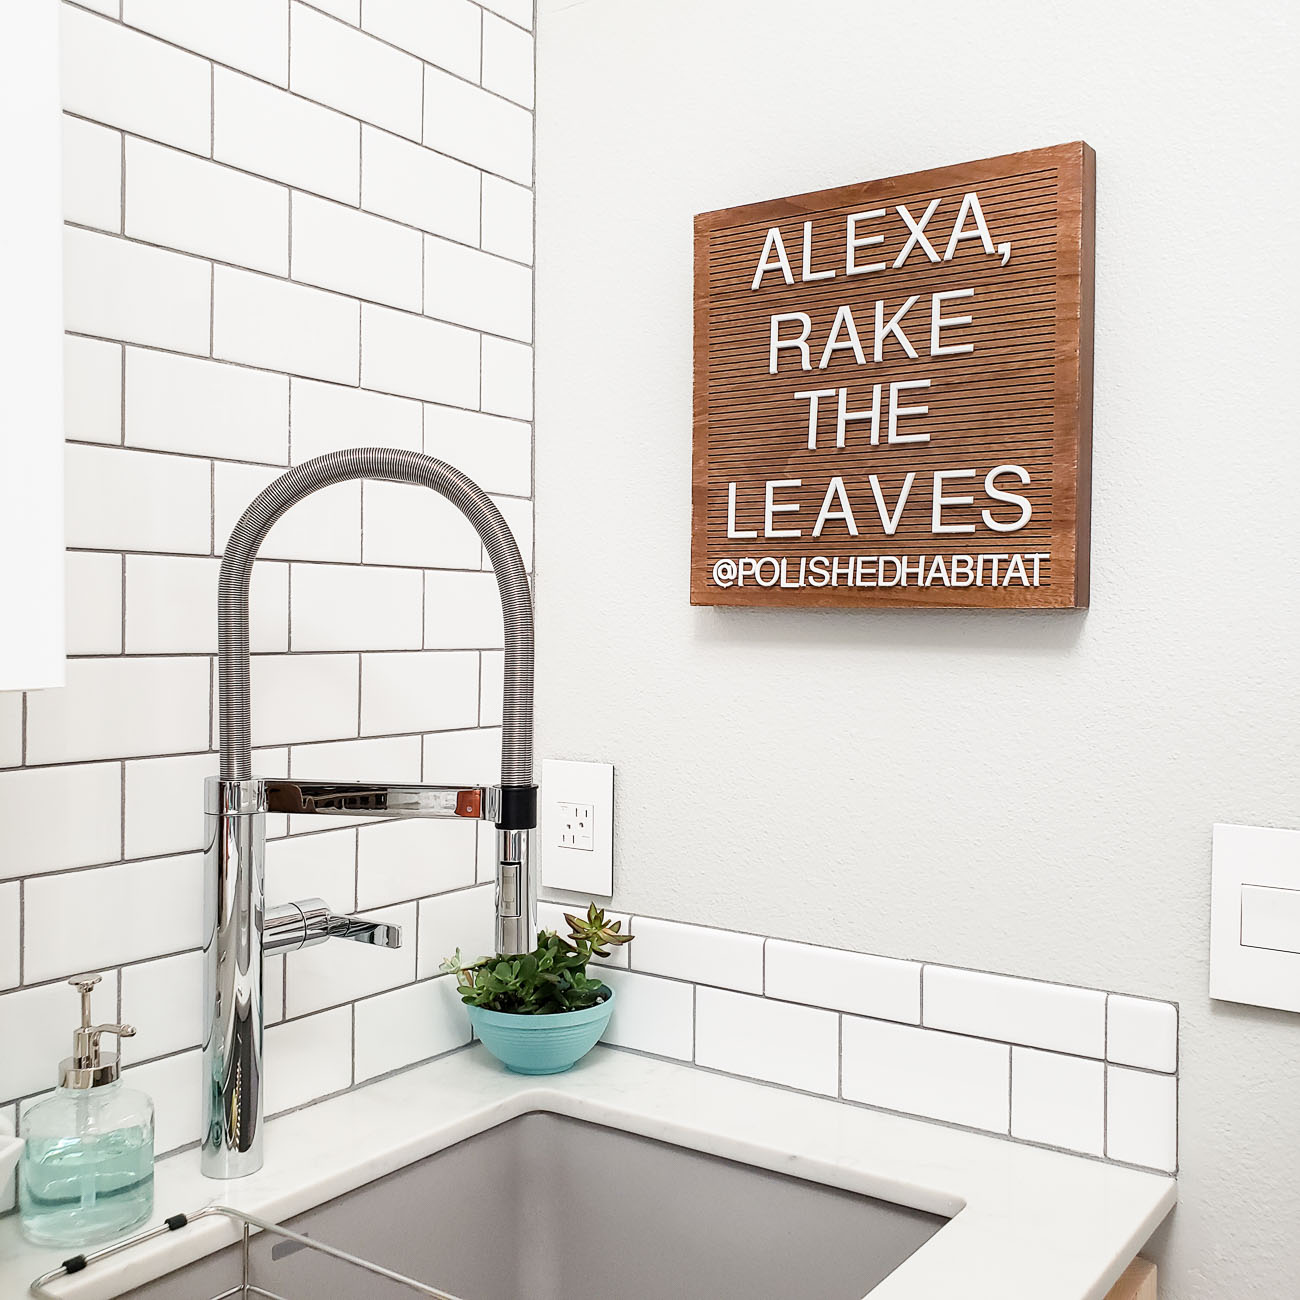 Fall wood letter board saying Alexa, Rake the Leaves